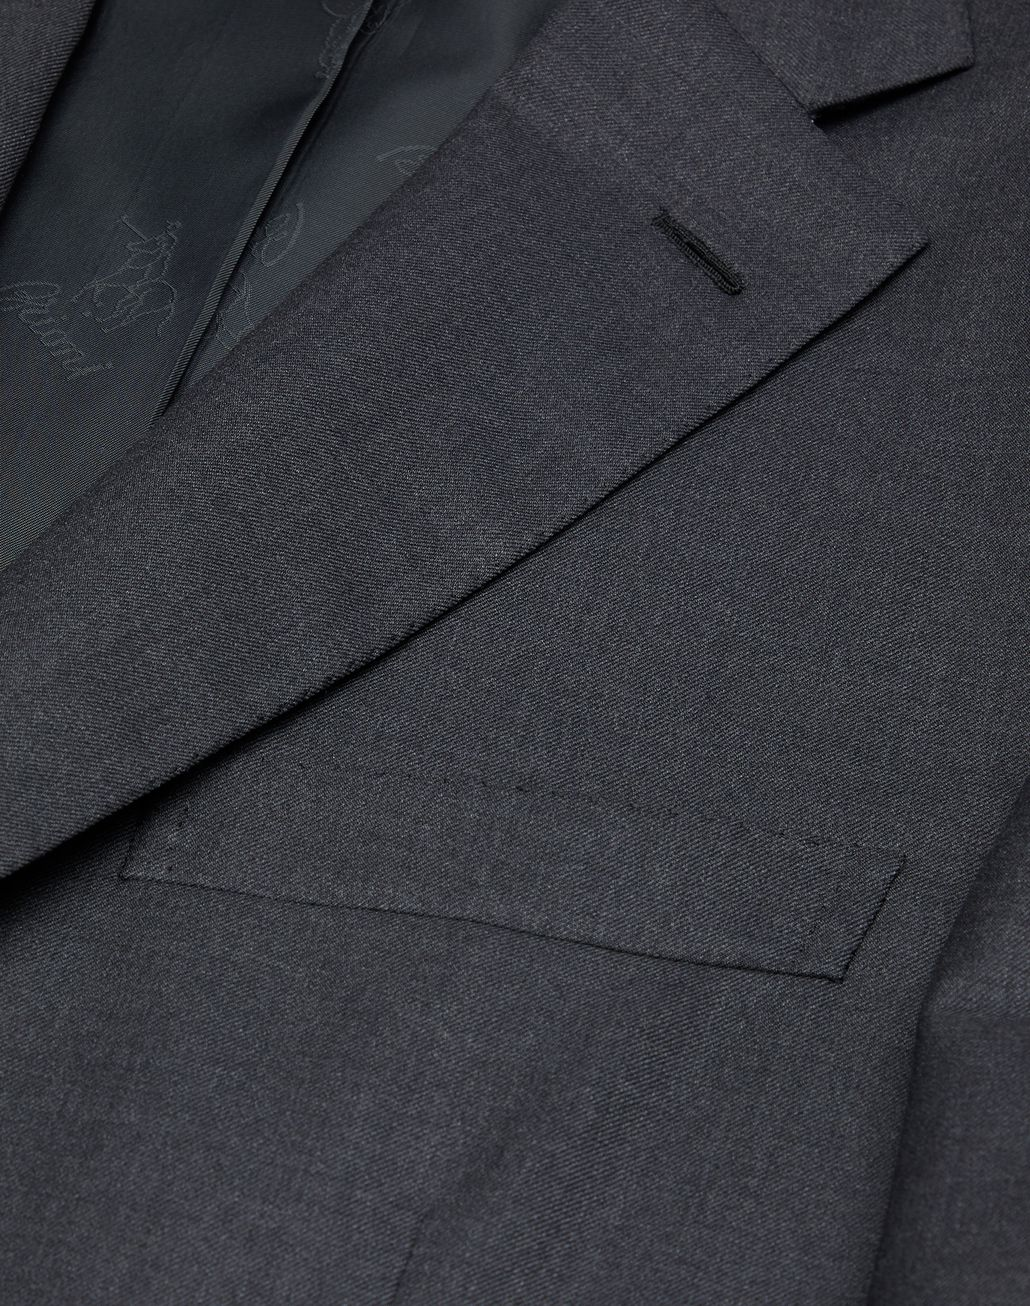 BRIONI Charcoal Brunico Suit Suits & Jackets U a